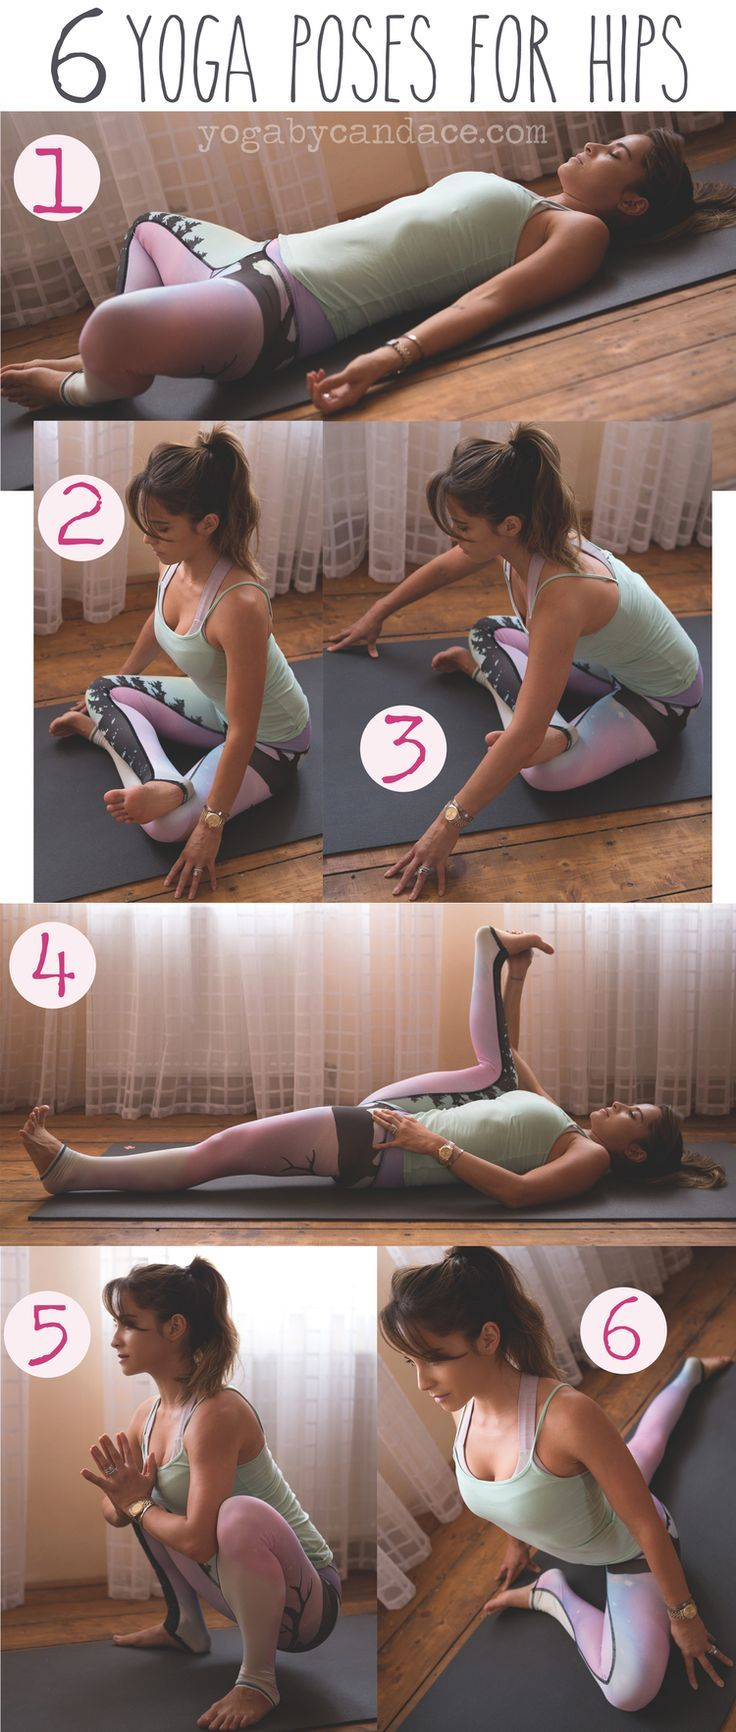 Yoga - Yoga poses to relieve stress.